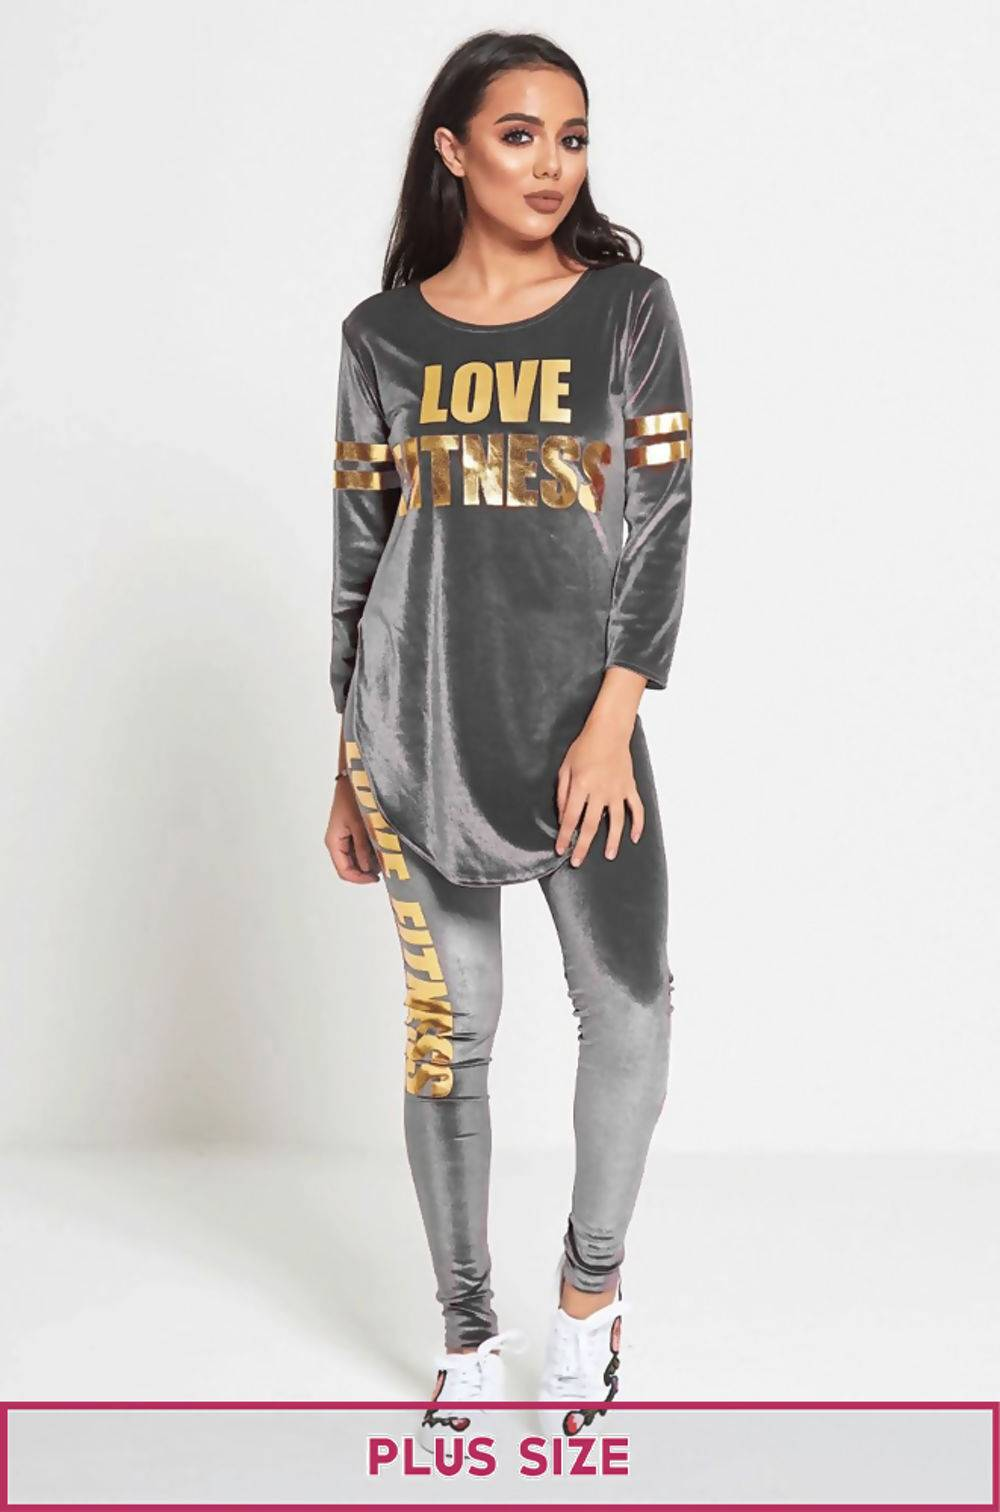 Plus Size Grey Love Fitness Suede Tracksuit J5 Fashion